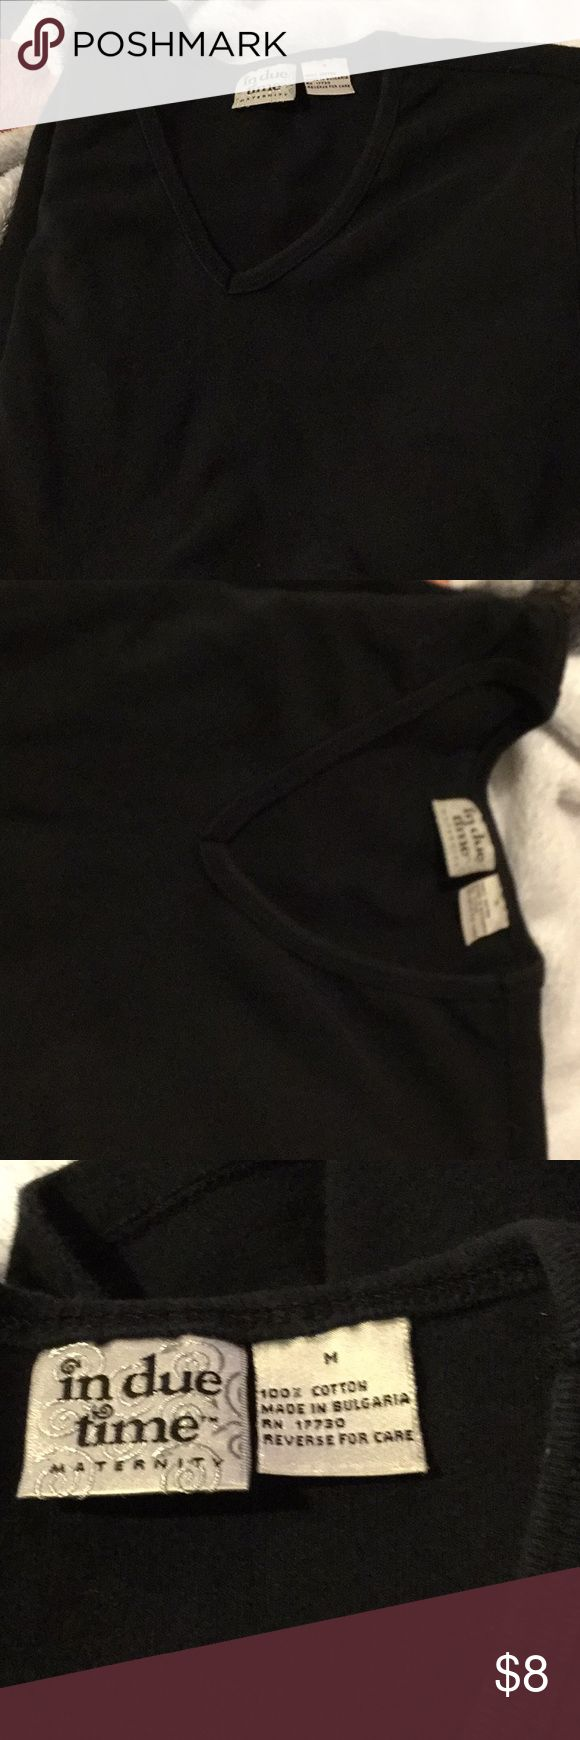 In due time short sleeve black shirt maternity In due time  maternity short sleeve black shirt medium nice. Used shirt but lots of life left. Nice black soft neck t . in due time Tops Tees - Short Sleeve